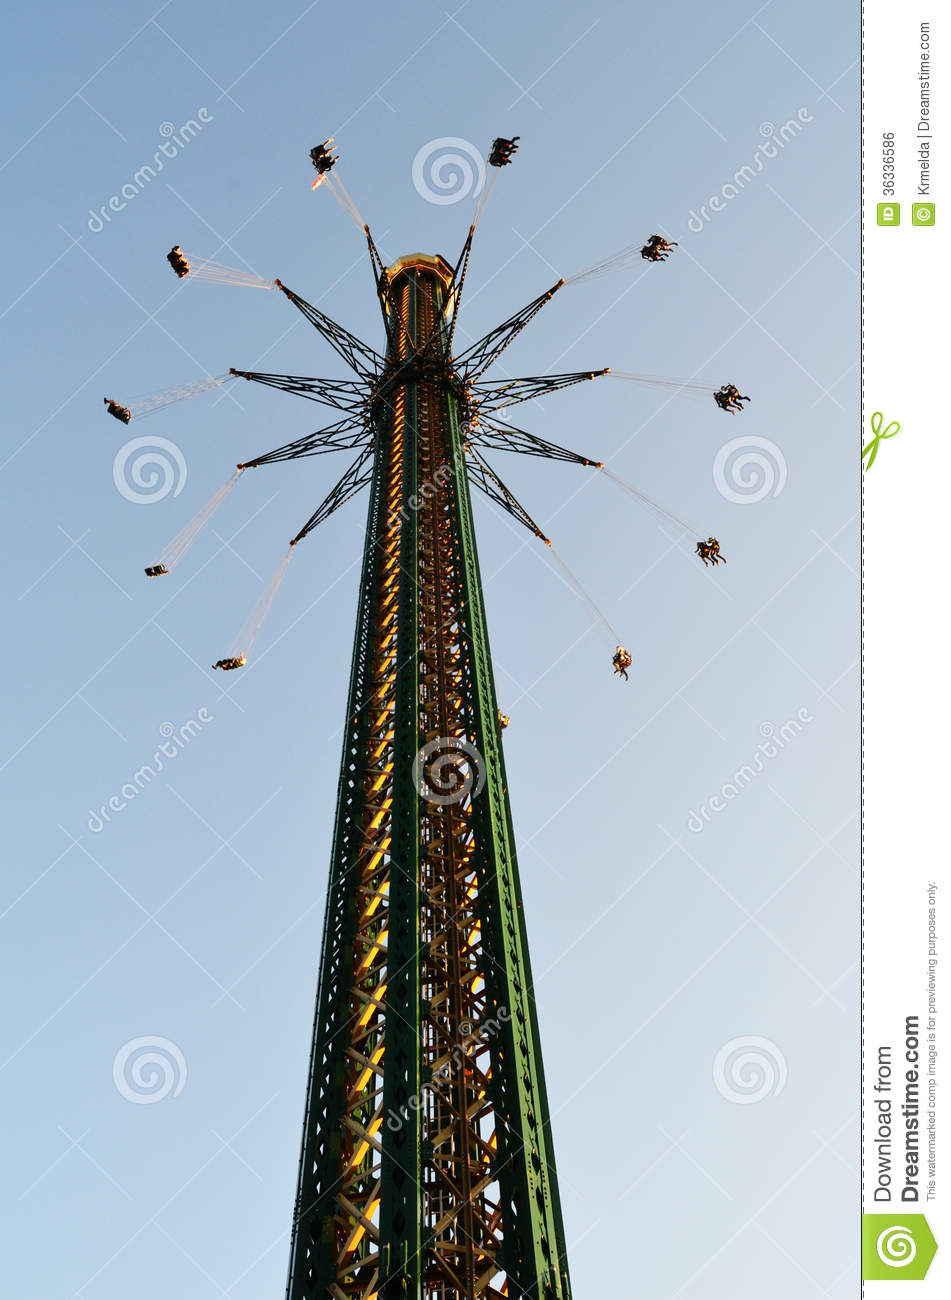 chair swing vienna white folding covers for sale tallest swinging carousel stock photo. image of austria - 36336586